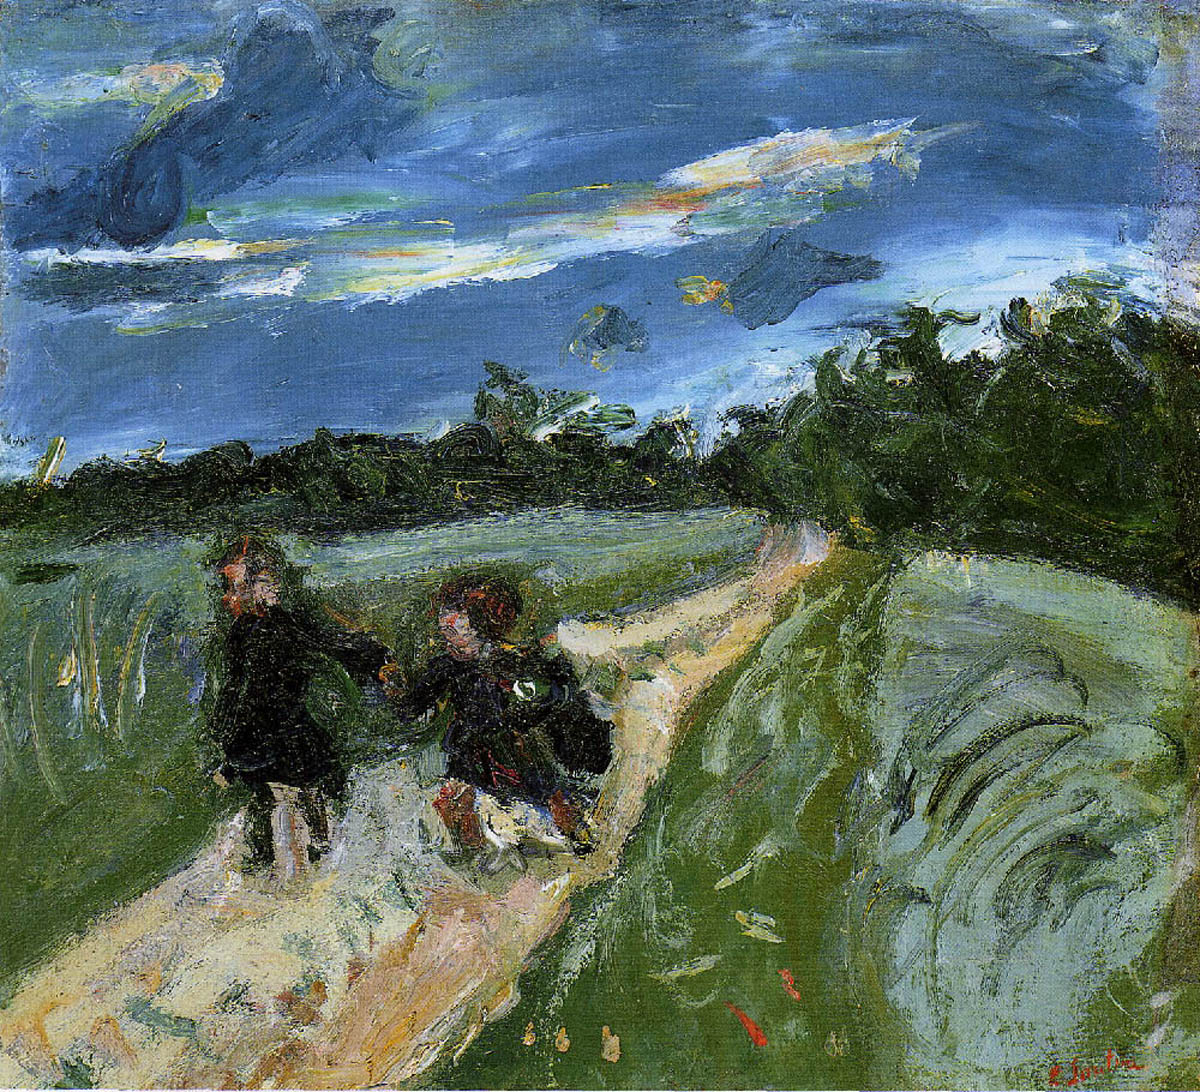 Return from School after the Storm, (c. 1939) Oil on canvas by Chaim Soutine Courtesy The Phillips Collection, Washington